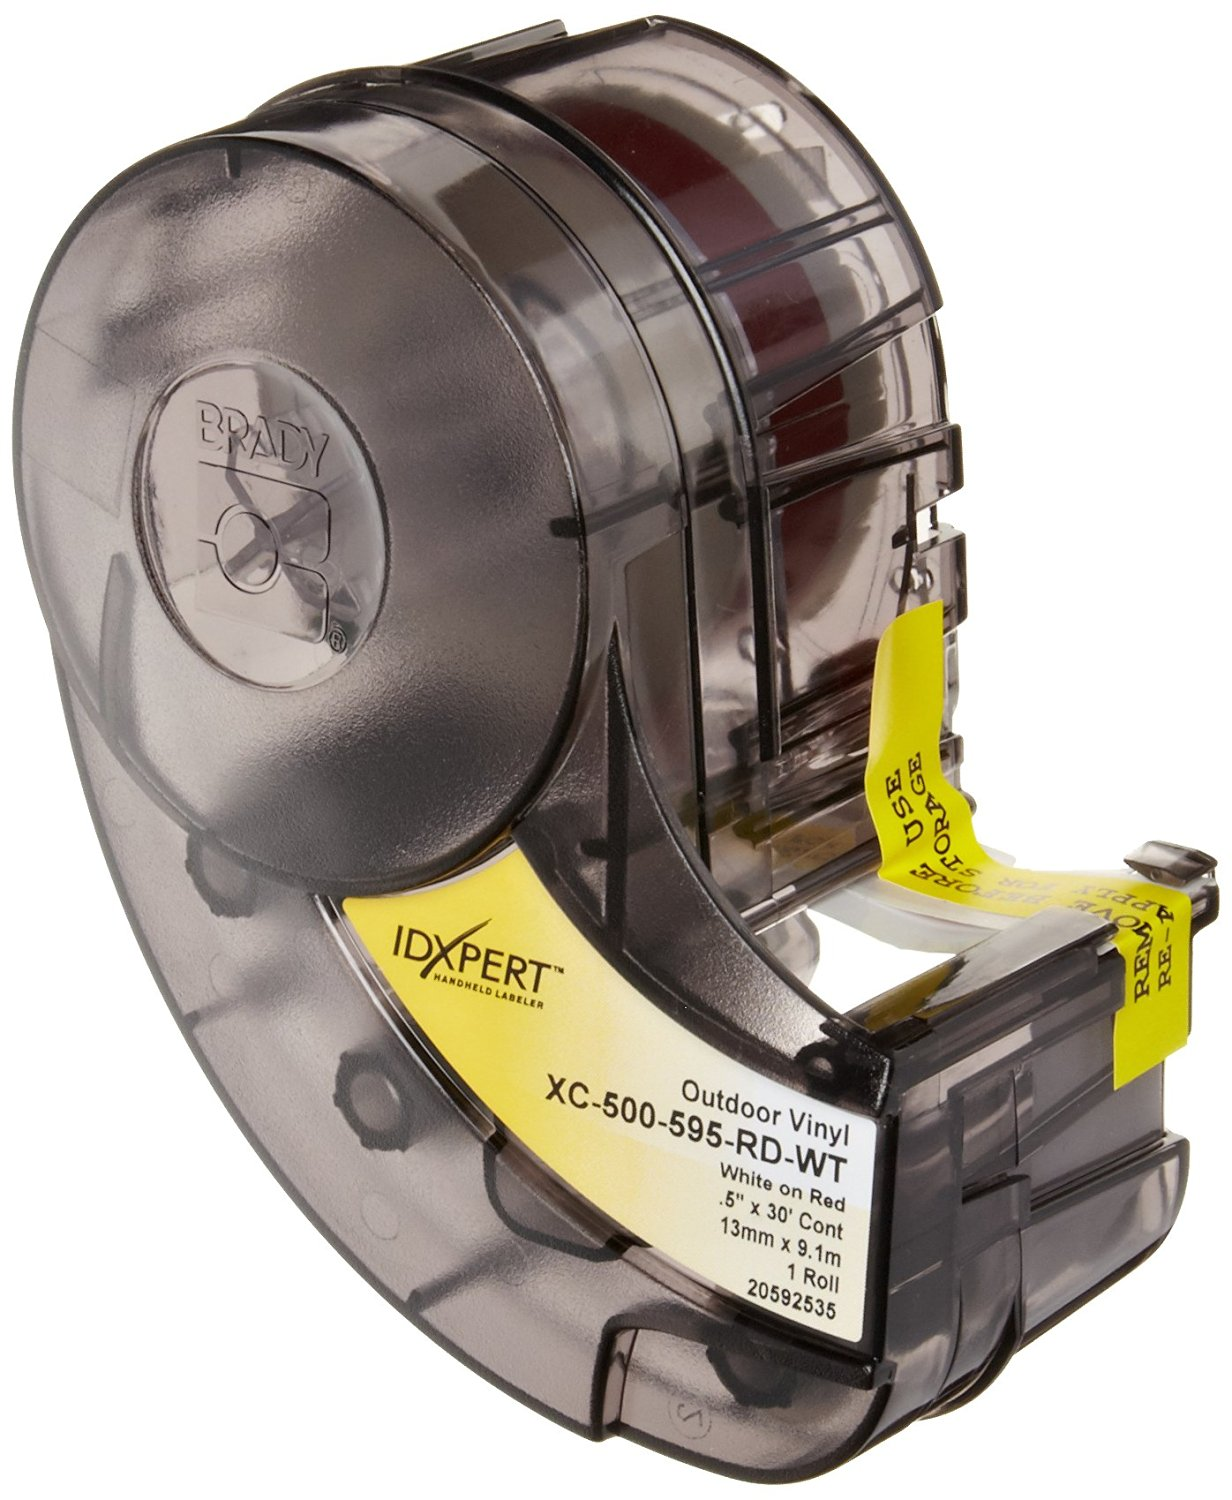 """Brady XC-500-595-RD-WT IDXPERT & LABXPERT Labels B-595 Indoor/Outdoor Vinyl Film White on Red, Printable Area: 19.000"""" W x 0.500"""" H 1 roll (30ft.)/Cartridge"""